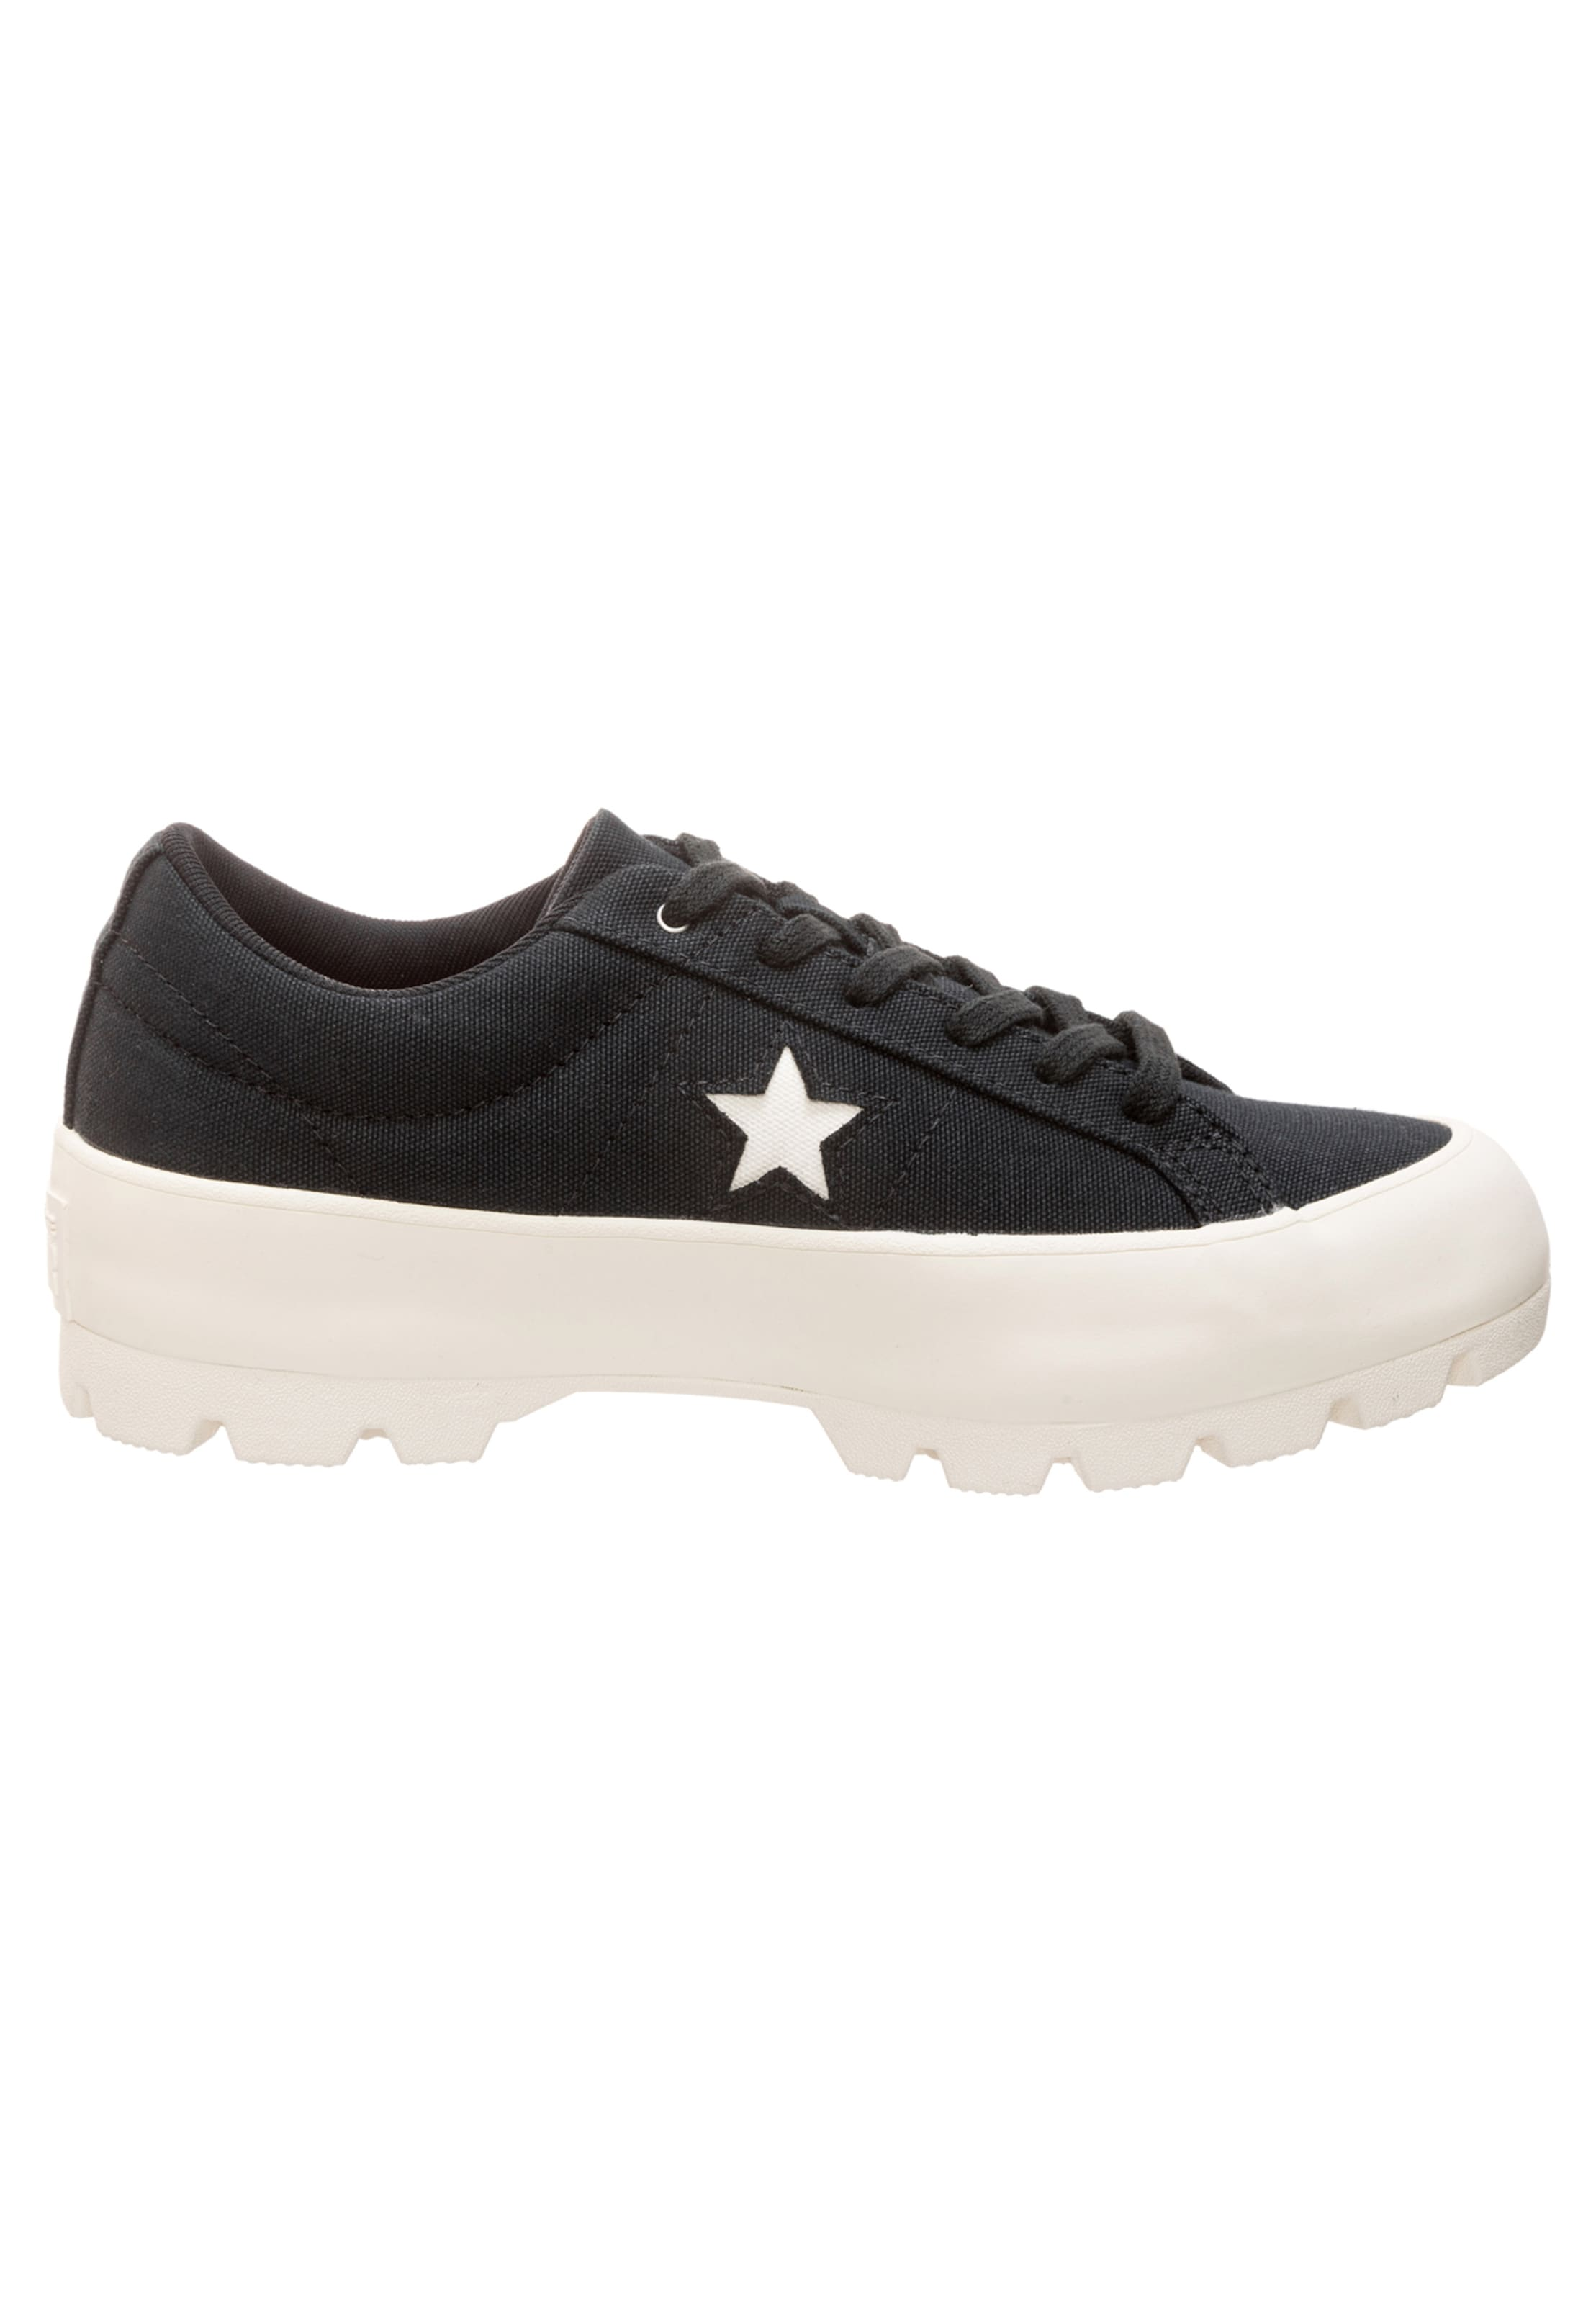 In Lugged Schwarz Star Sneaker Ox' Converse 'one nkwP0O8